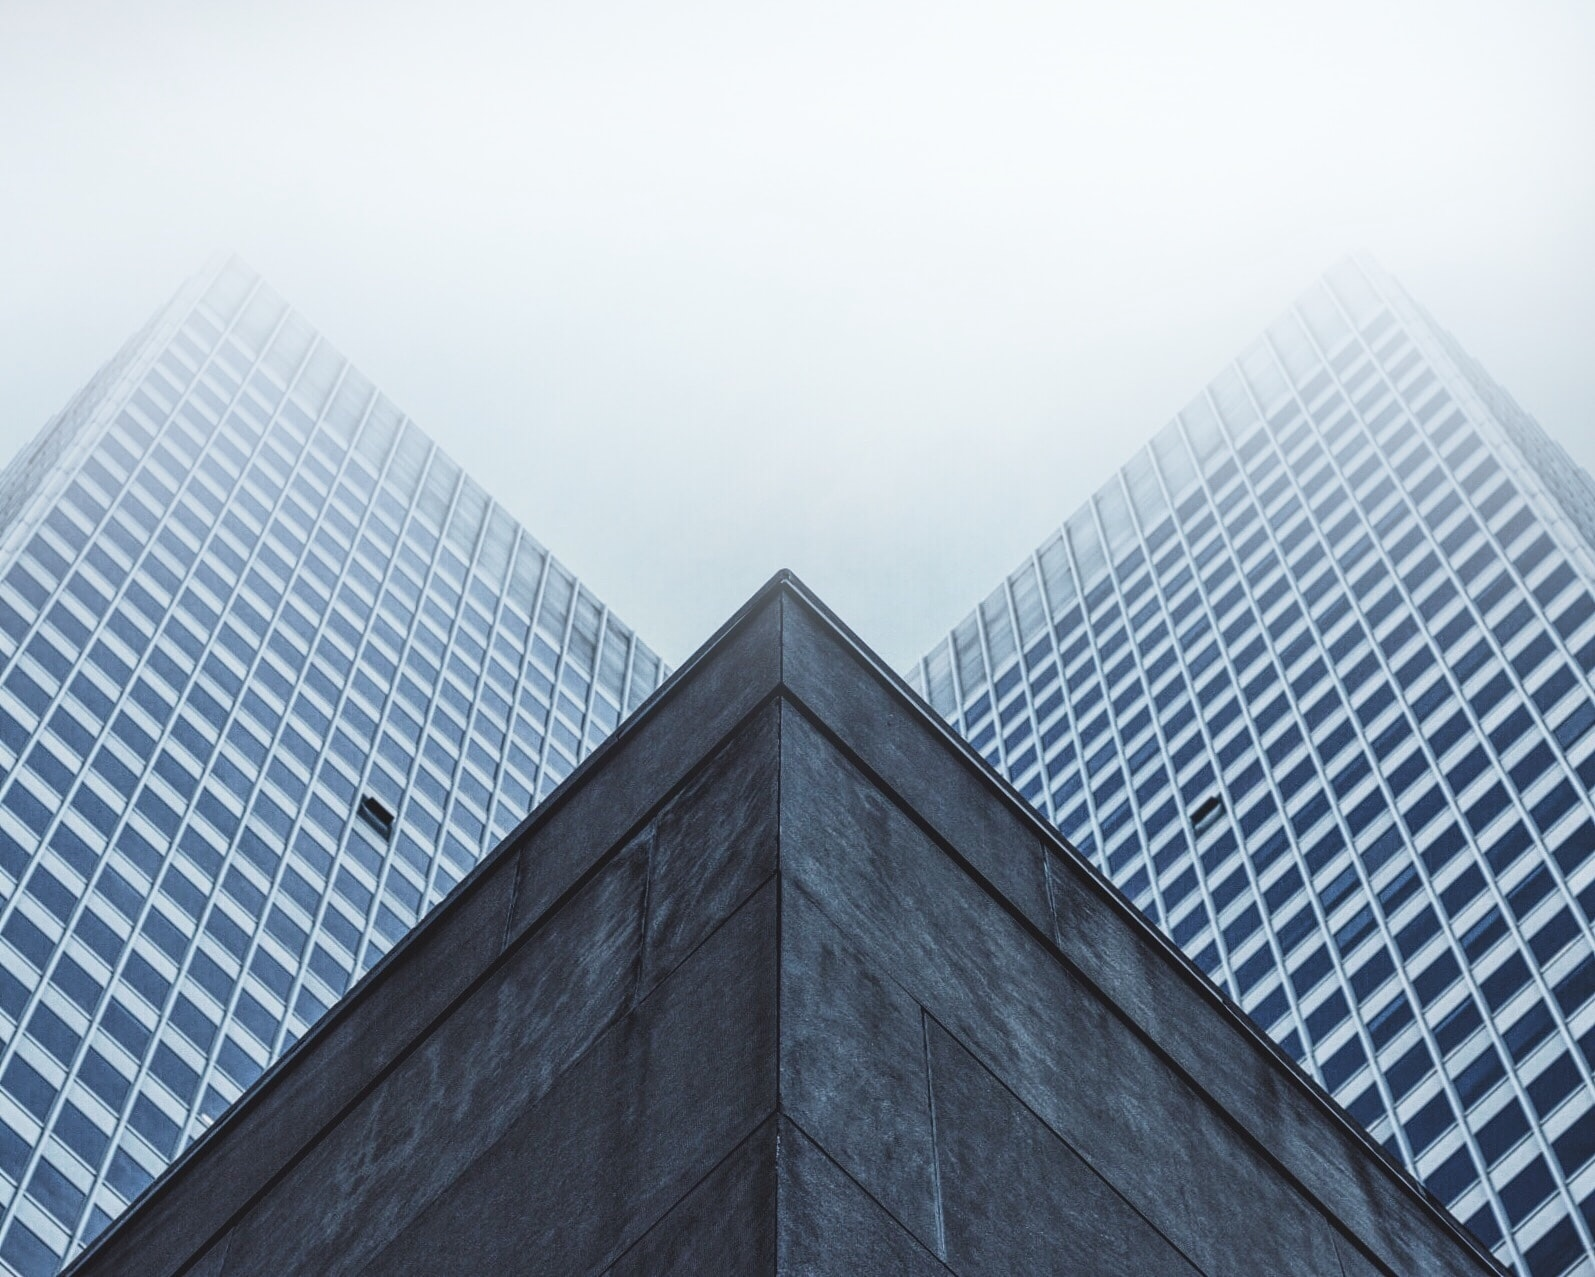 Two high-rise wings towering above the roof of a lower building in Montreal